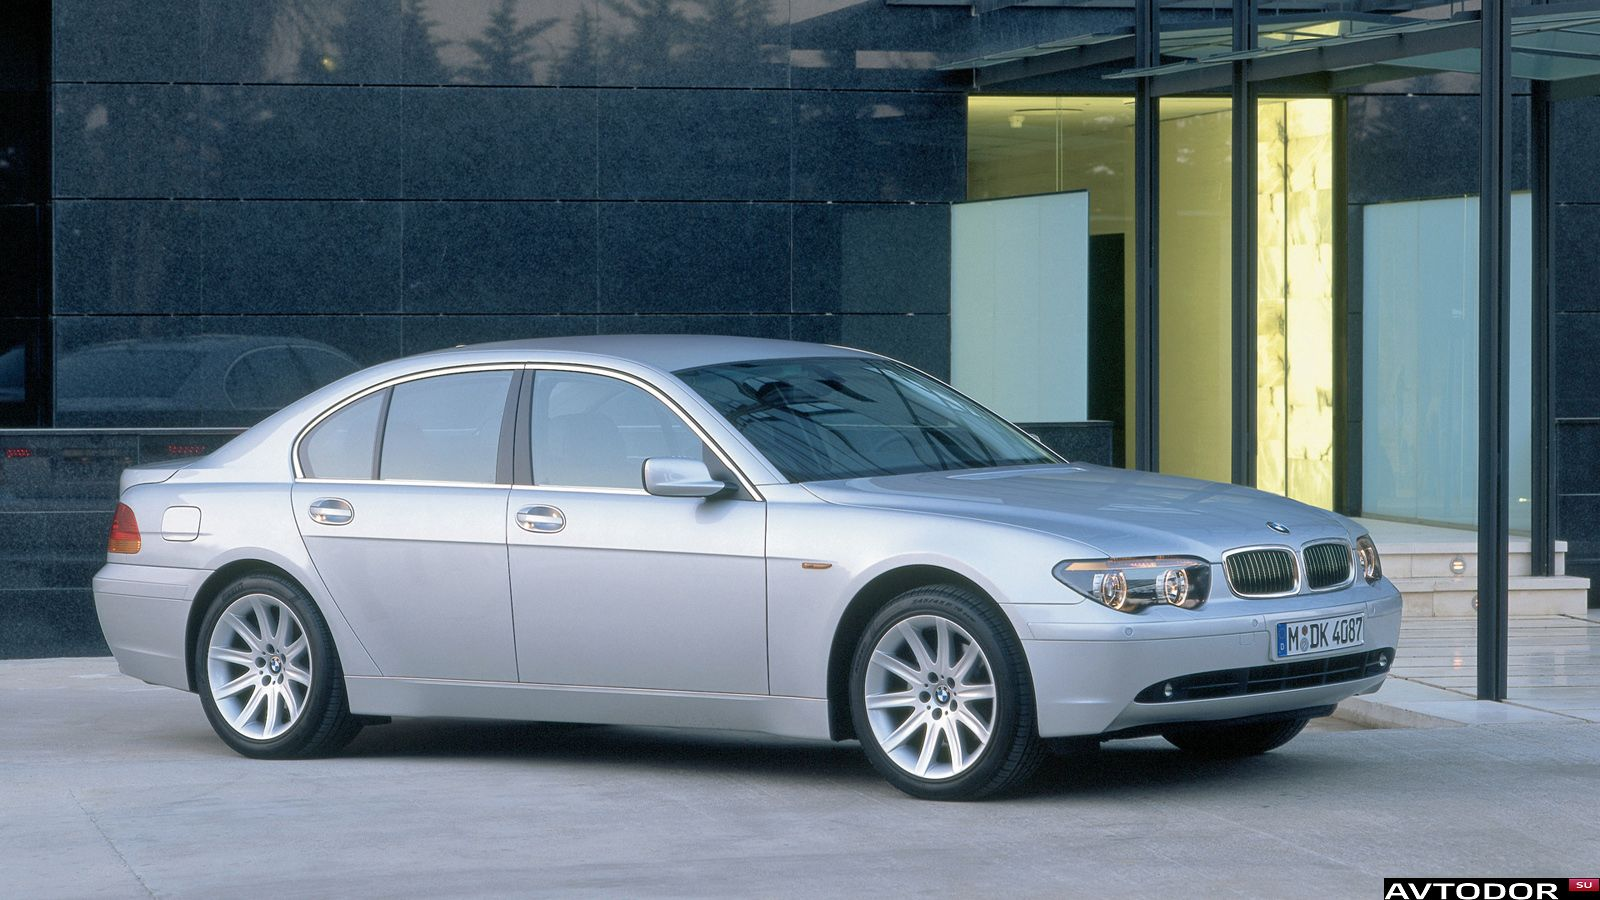 2002 bmw 7 series information and photos zombiedrive. Black Bedroom Furniture Sets. Home Design Ideas